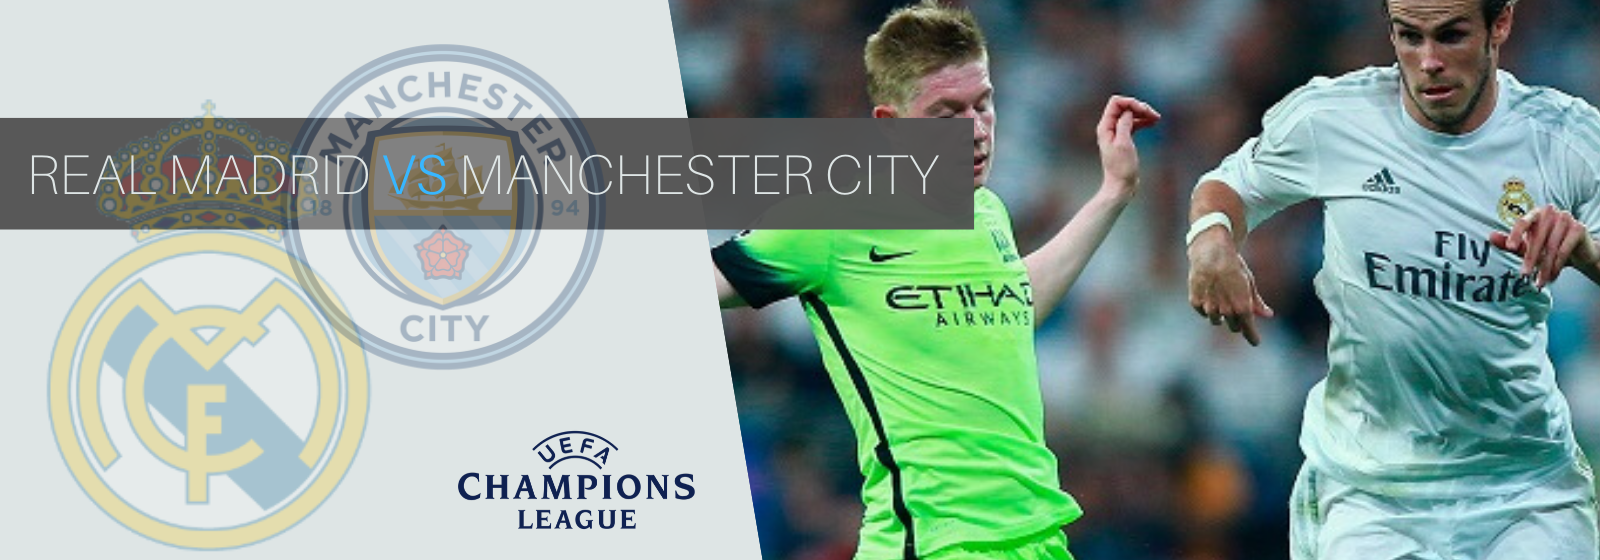 Asianconnect: Real Madrid vs Manchester City Odds for February 26, 2020